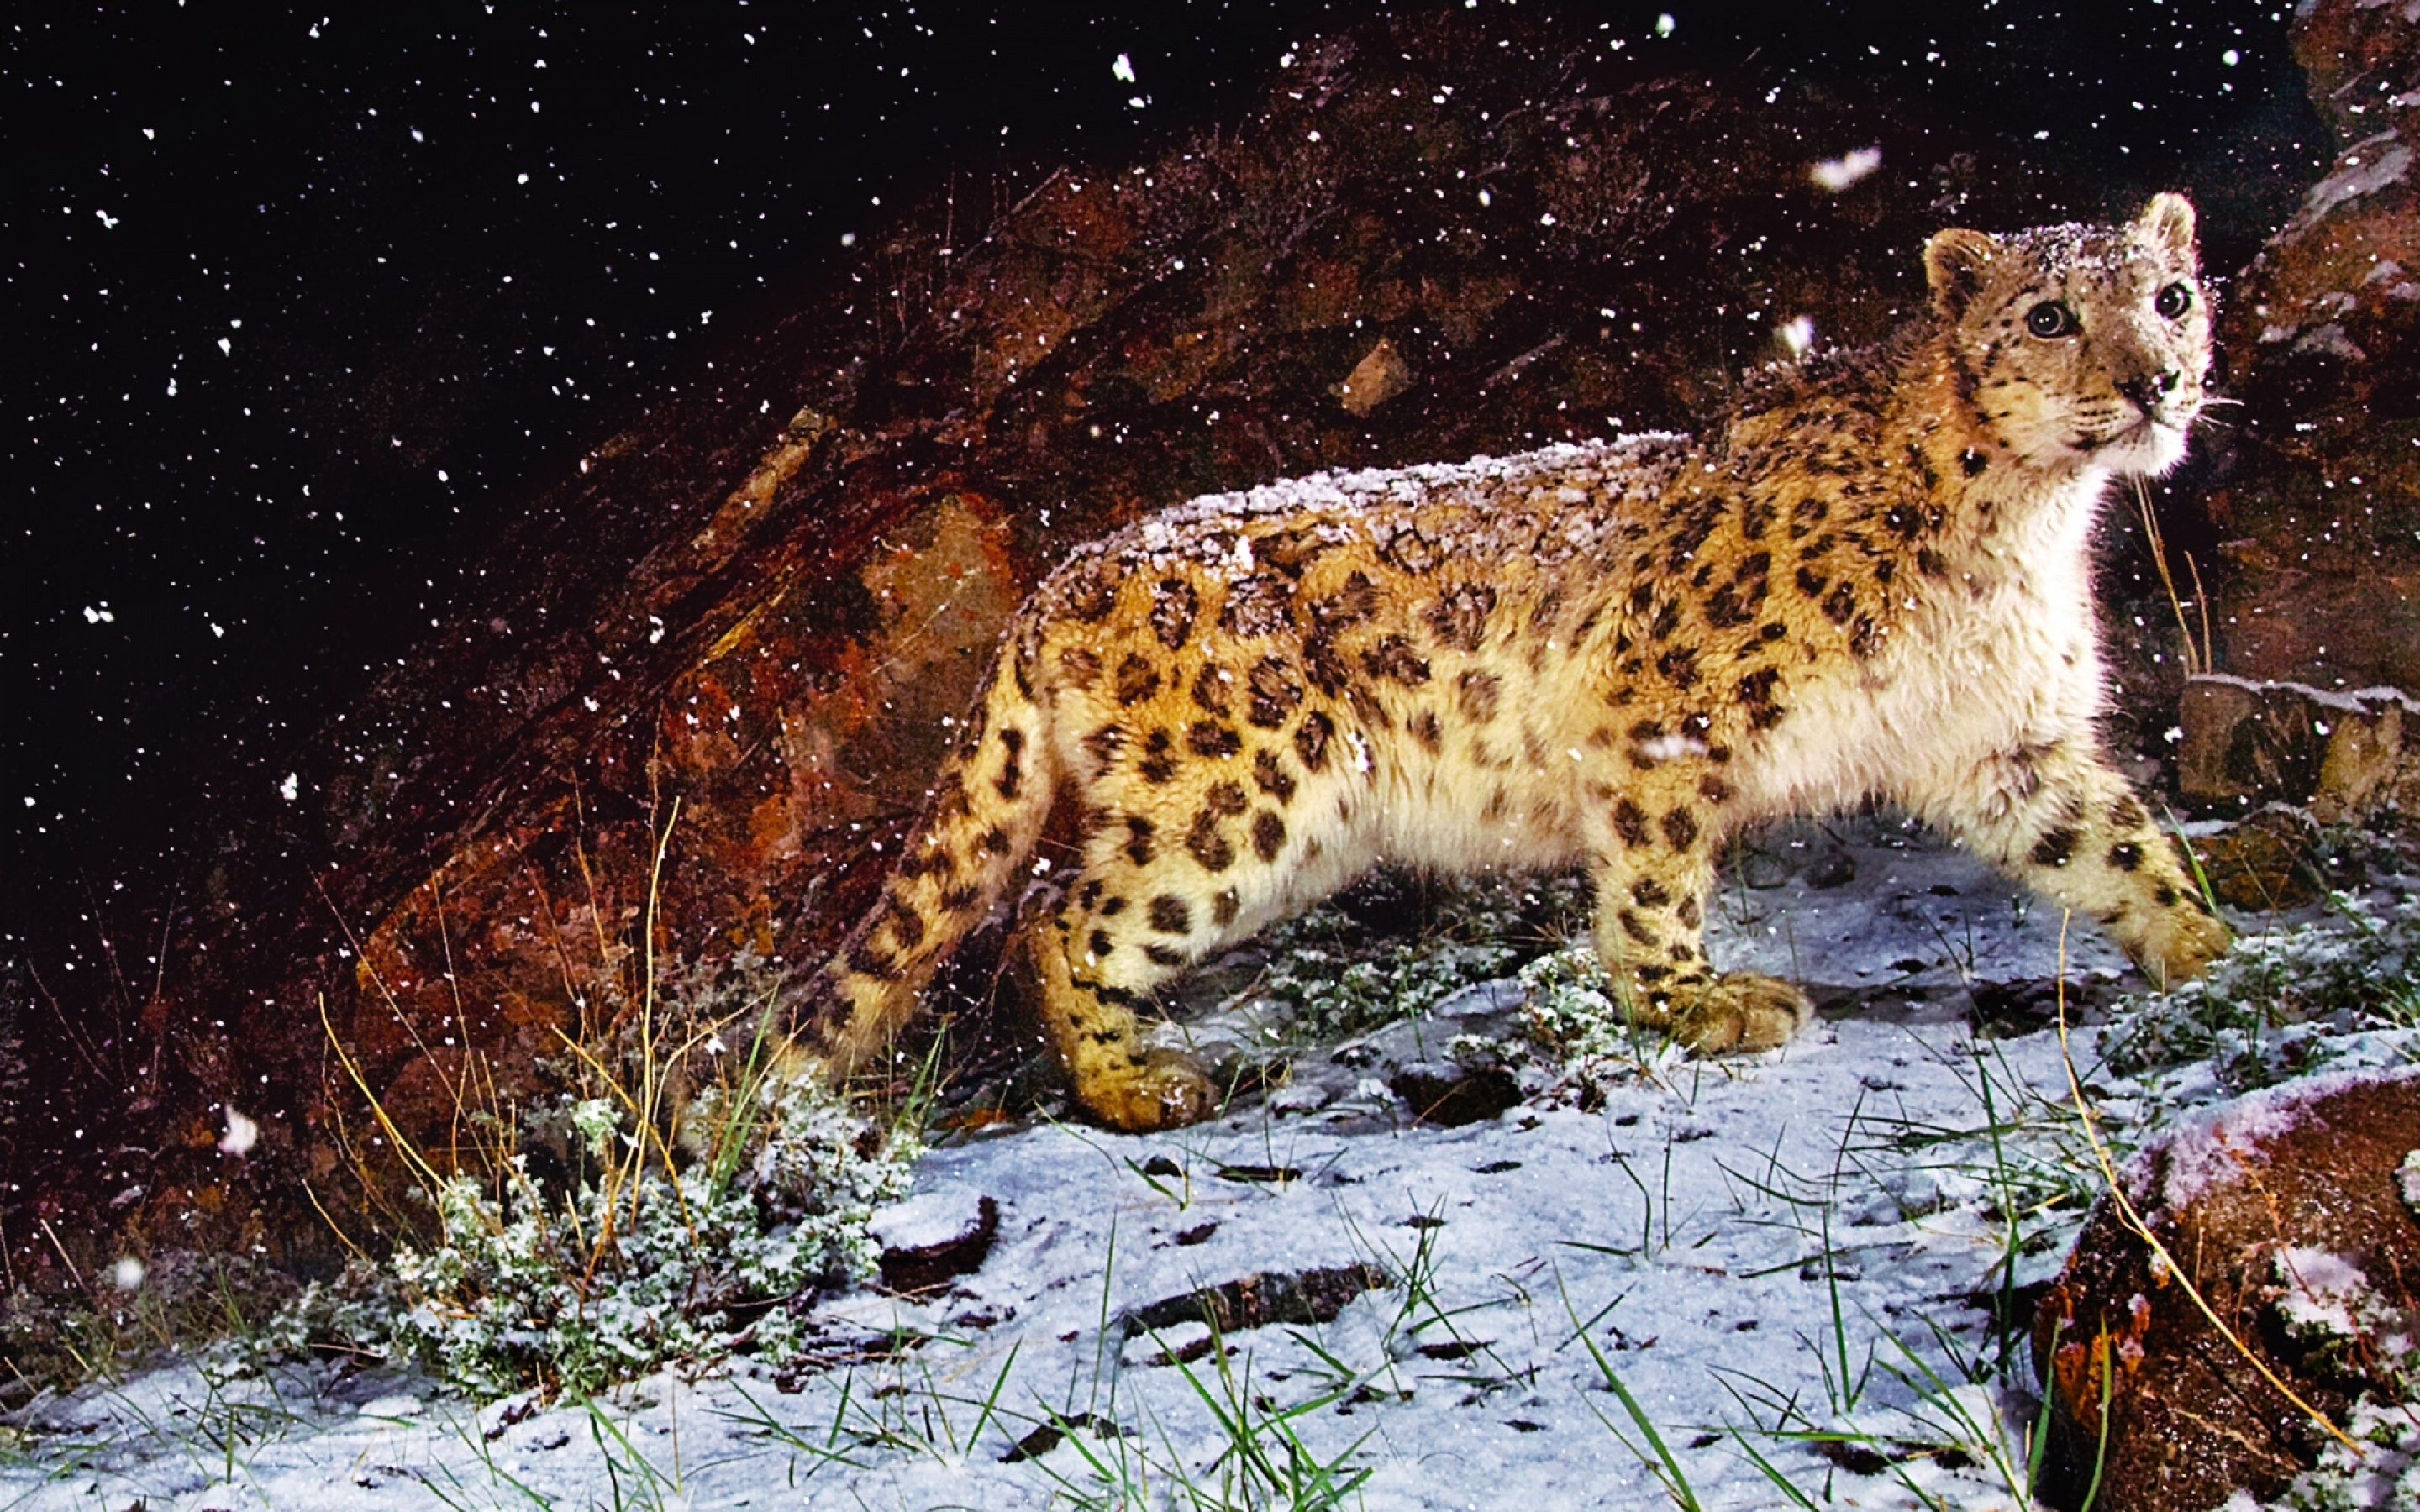 leopard wallpapers photos and desktop backgrounds up to 8K